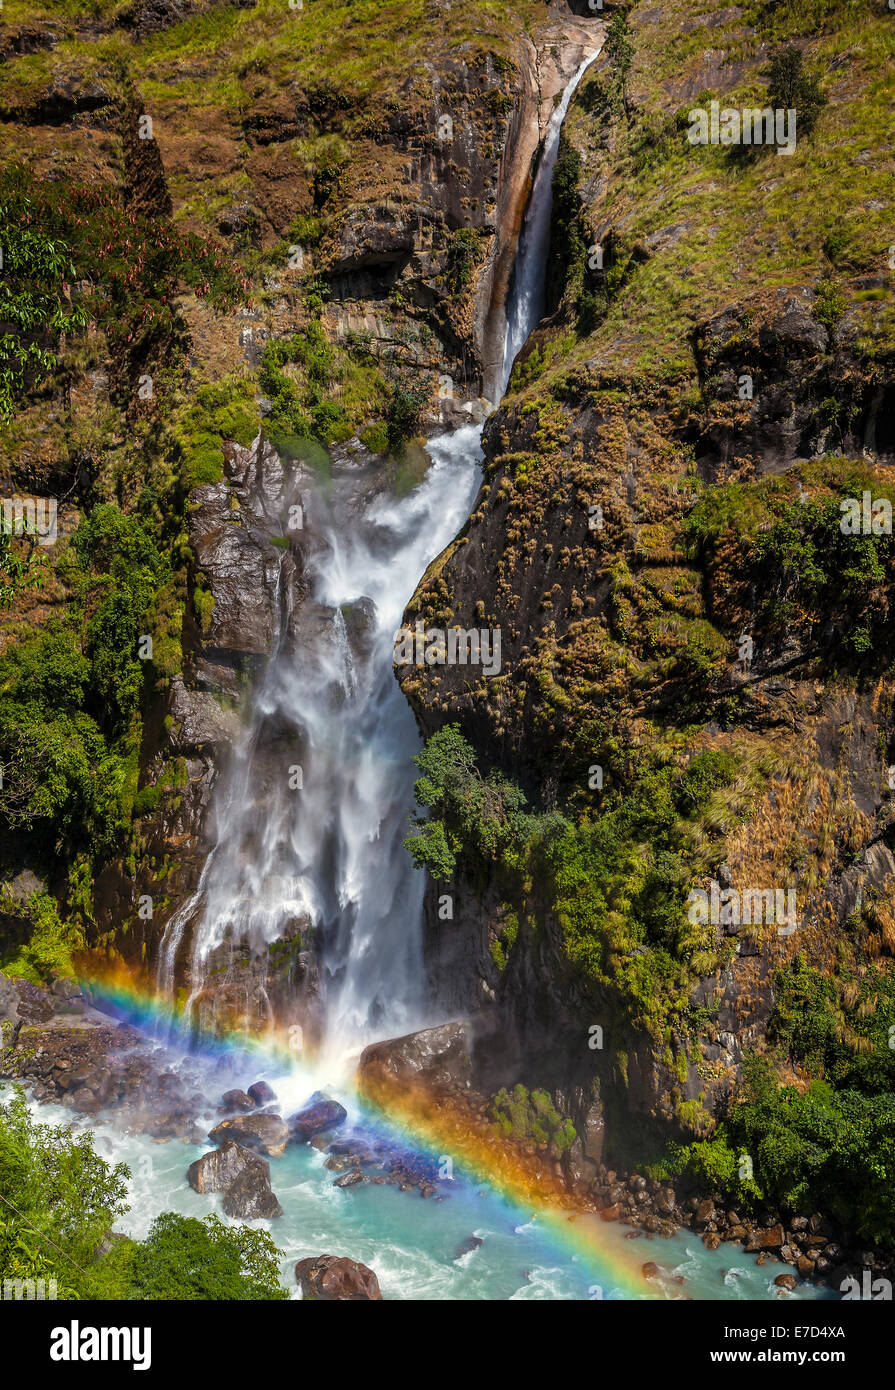 Mountain waterfall in forest, Annapurna region, Nepal. - Stock Image